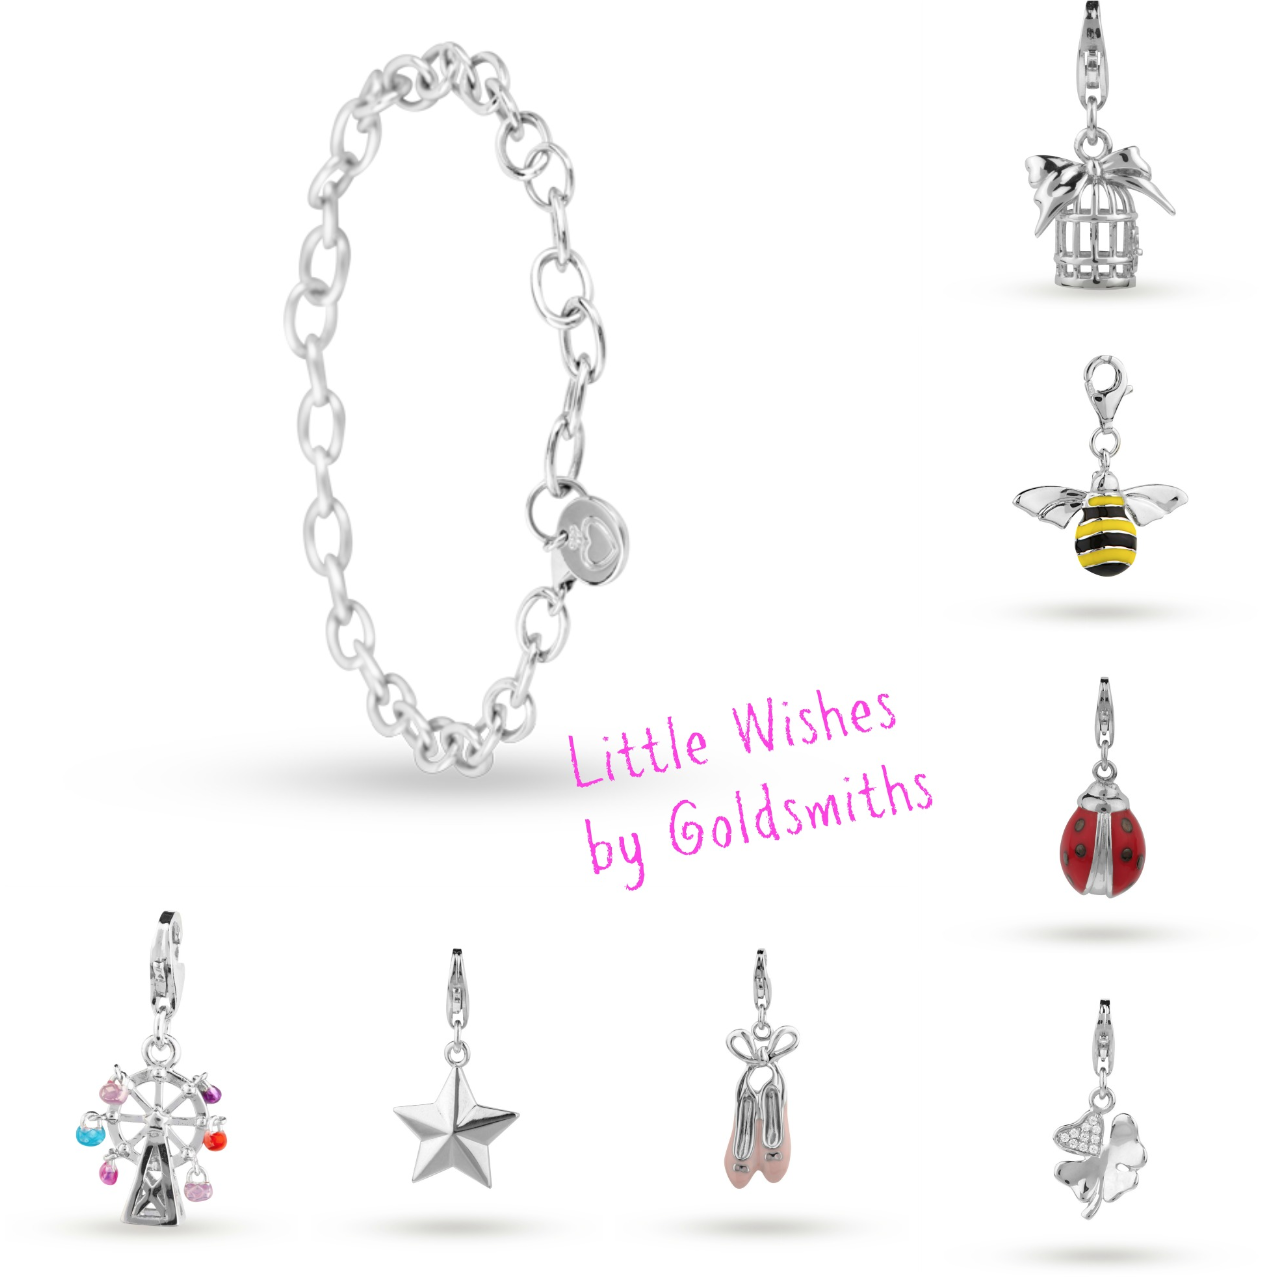 The new Little Wishes by Goldsmiths jewellery V I BRAND